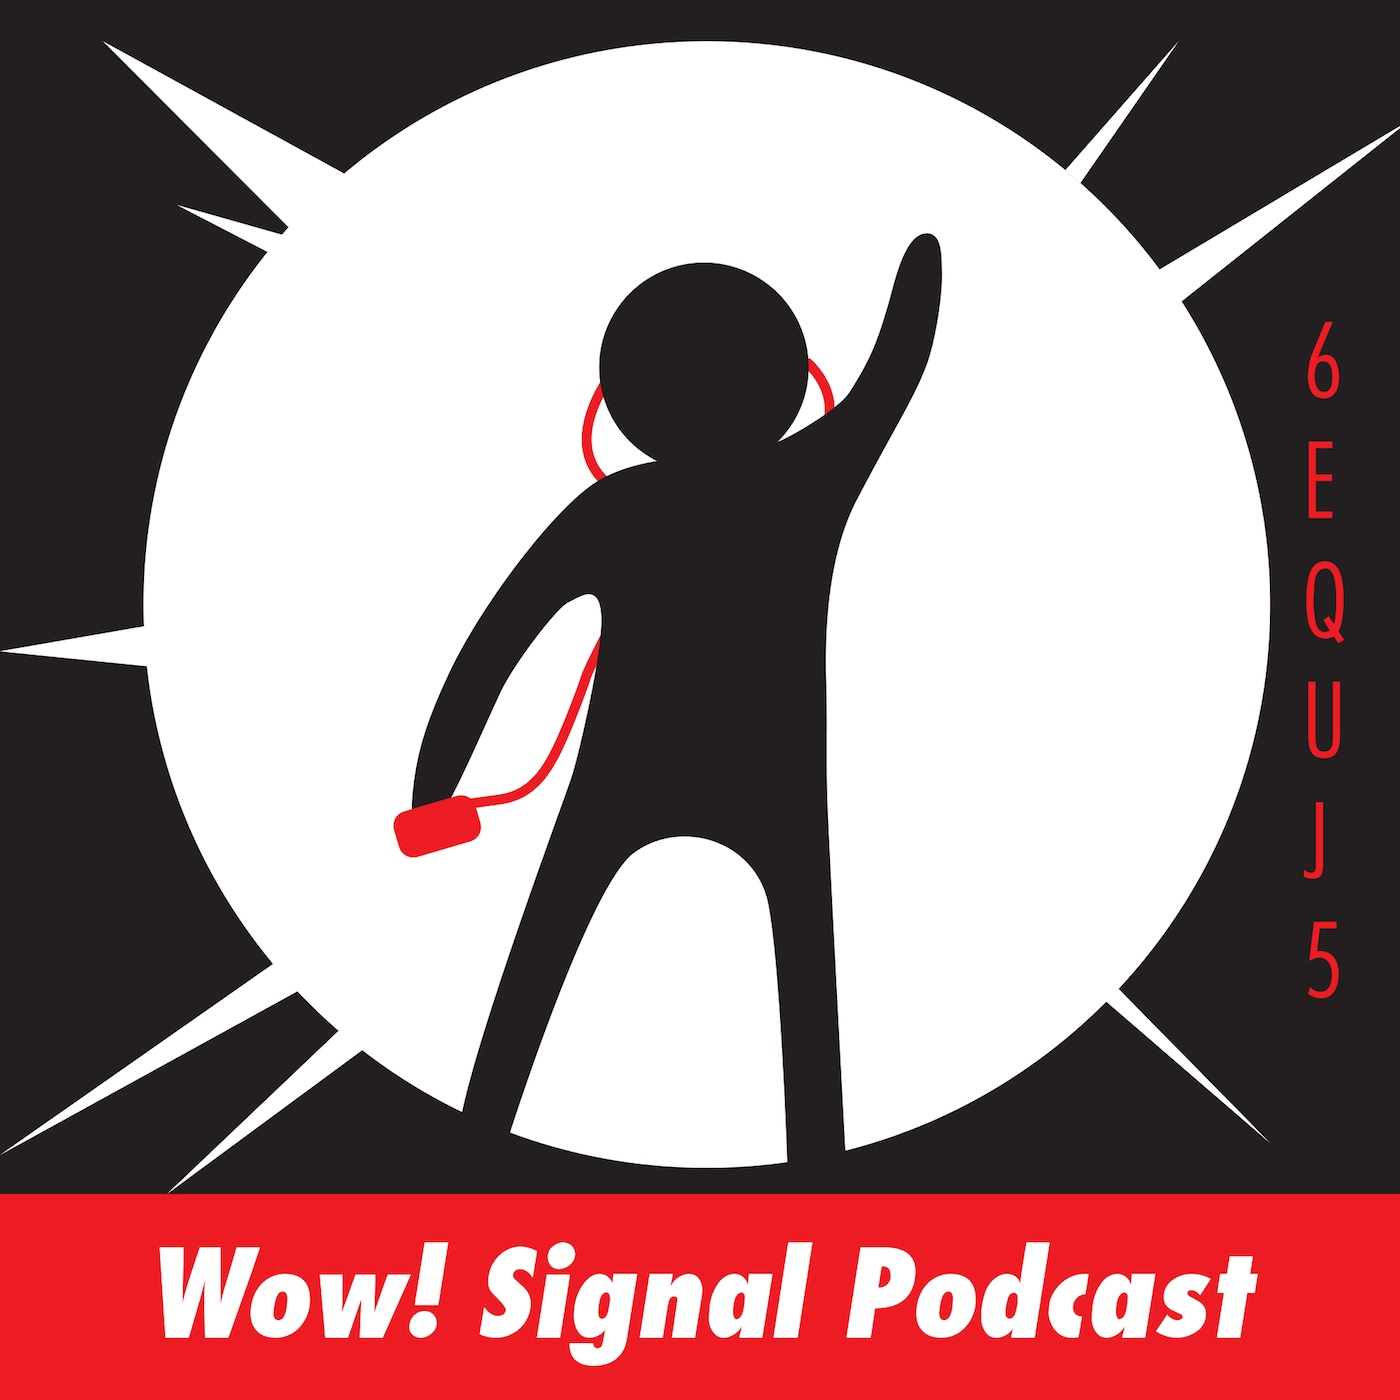 The Wow! Signal Podcast show art